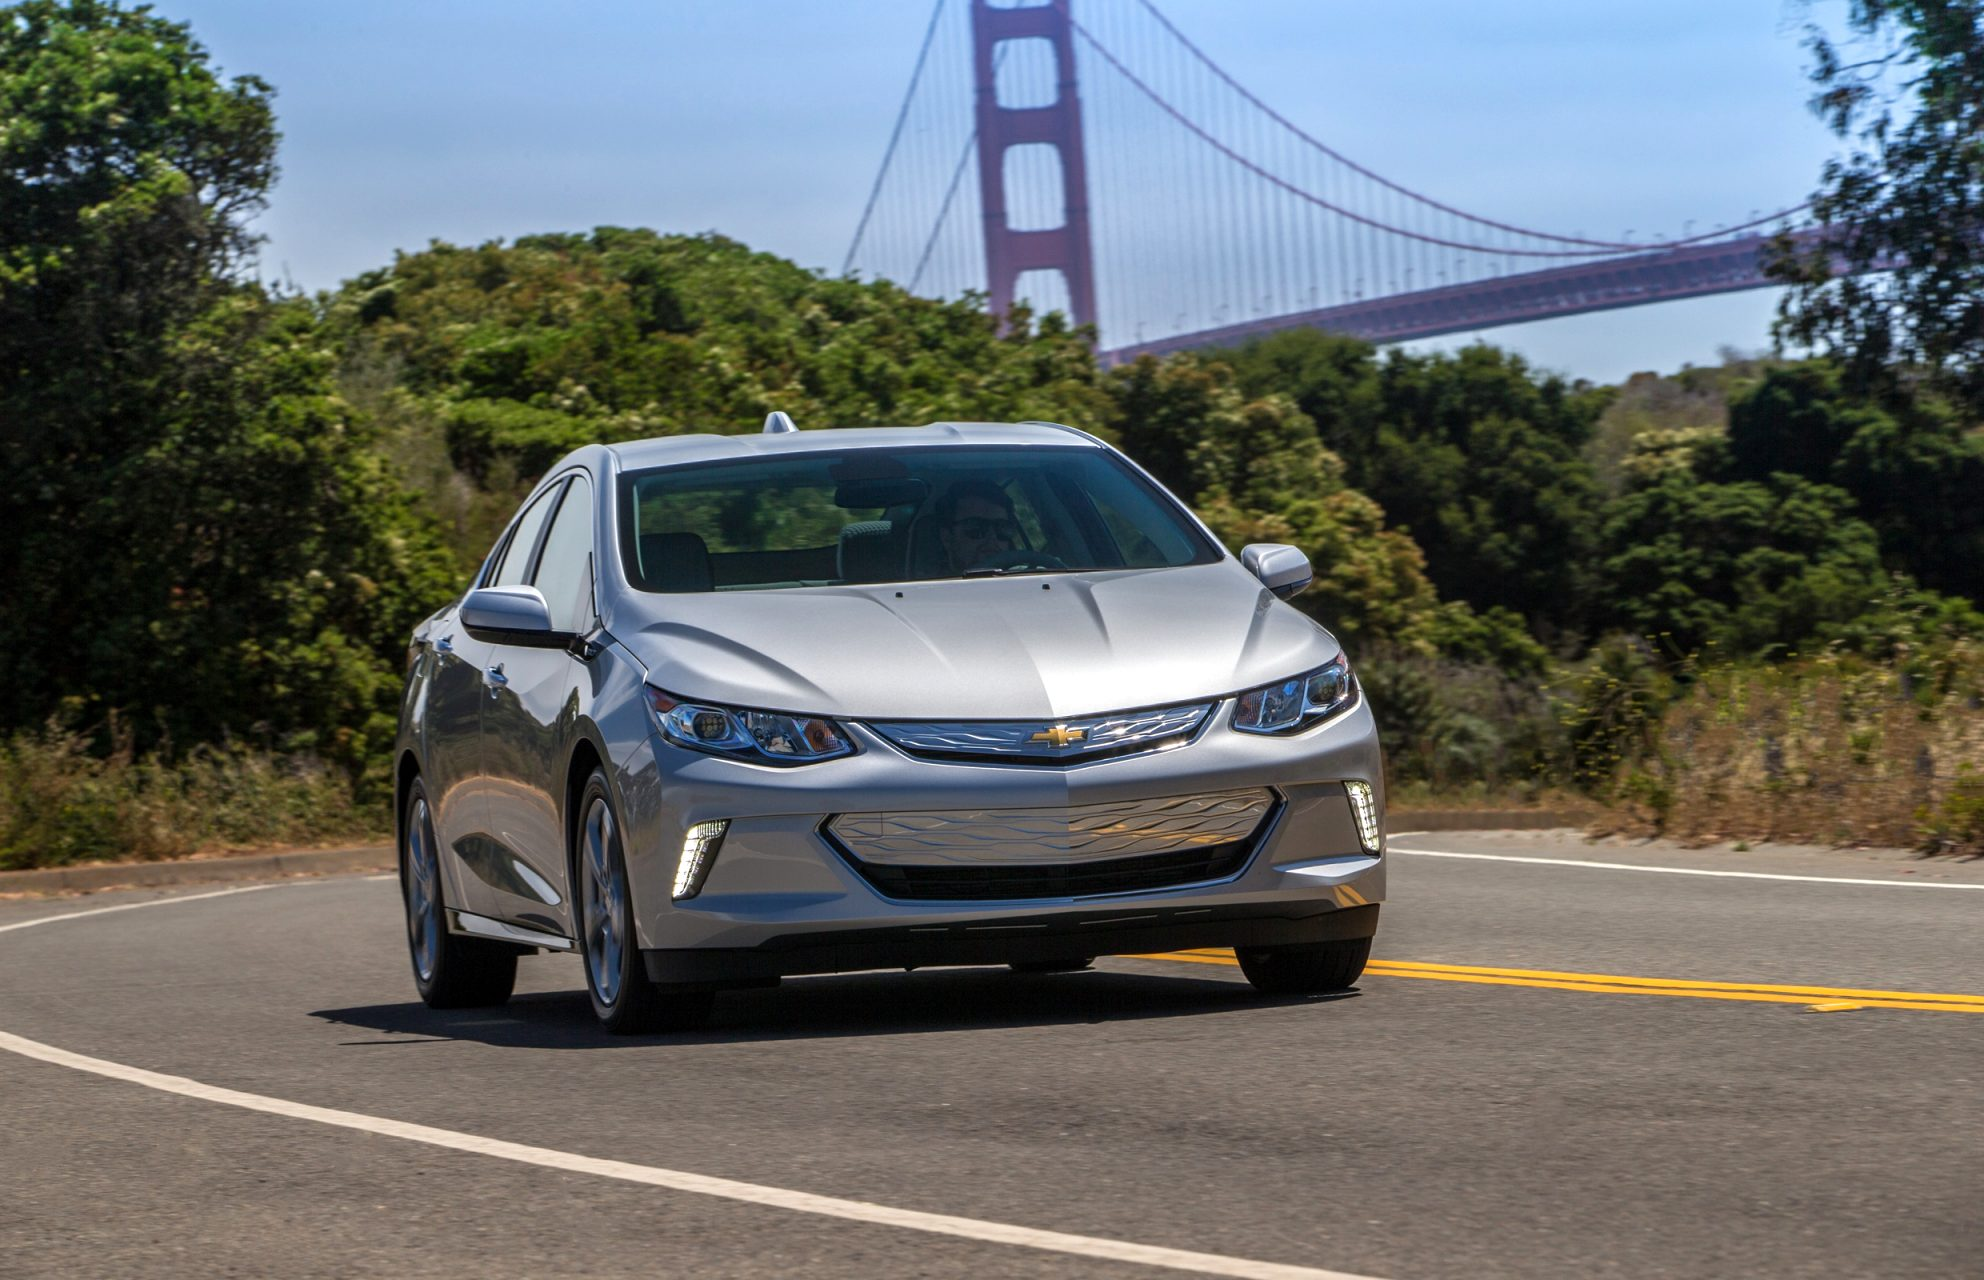 2021 chevrolet volt price Price and Review